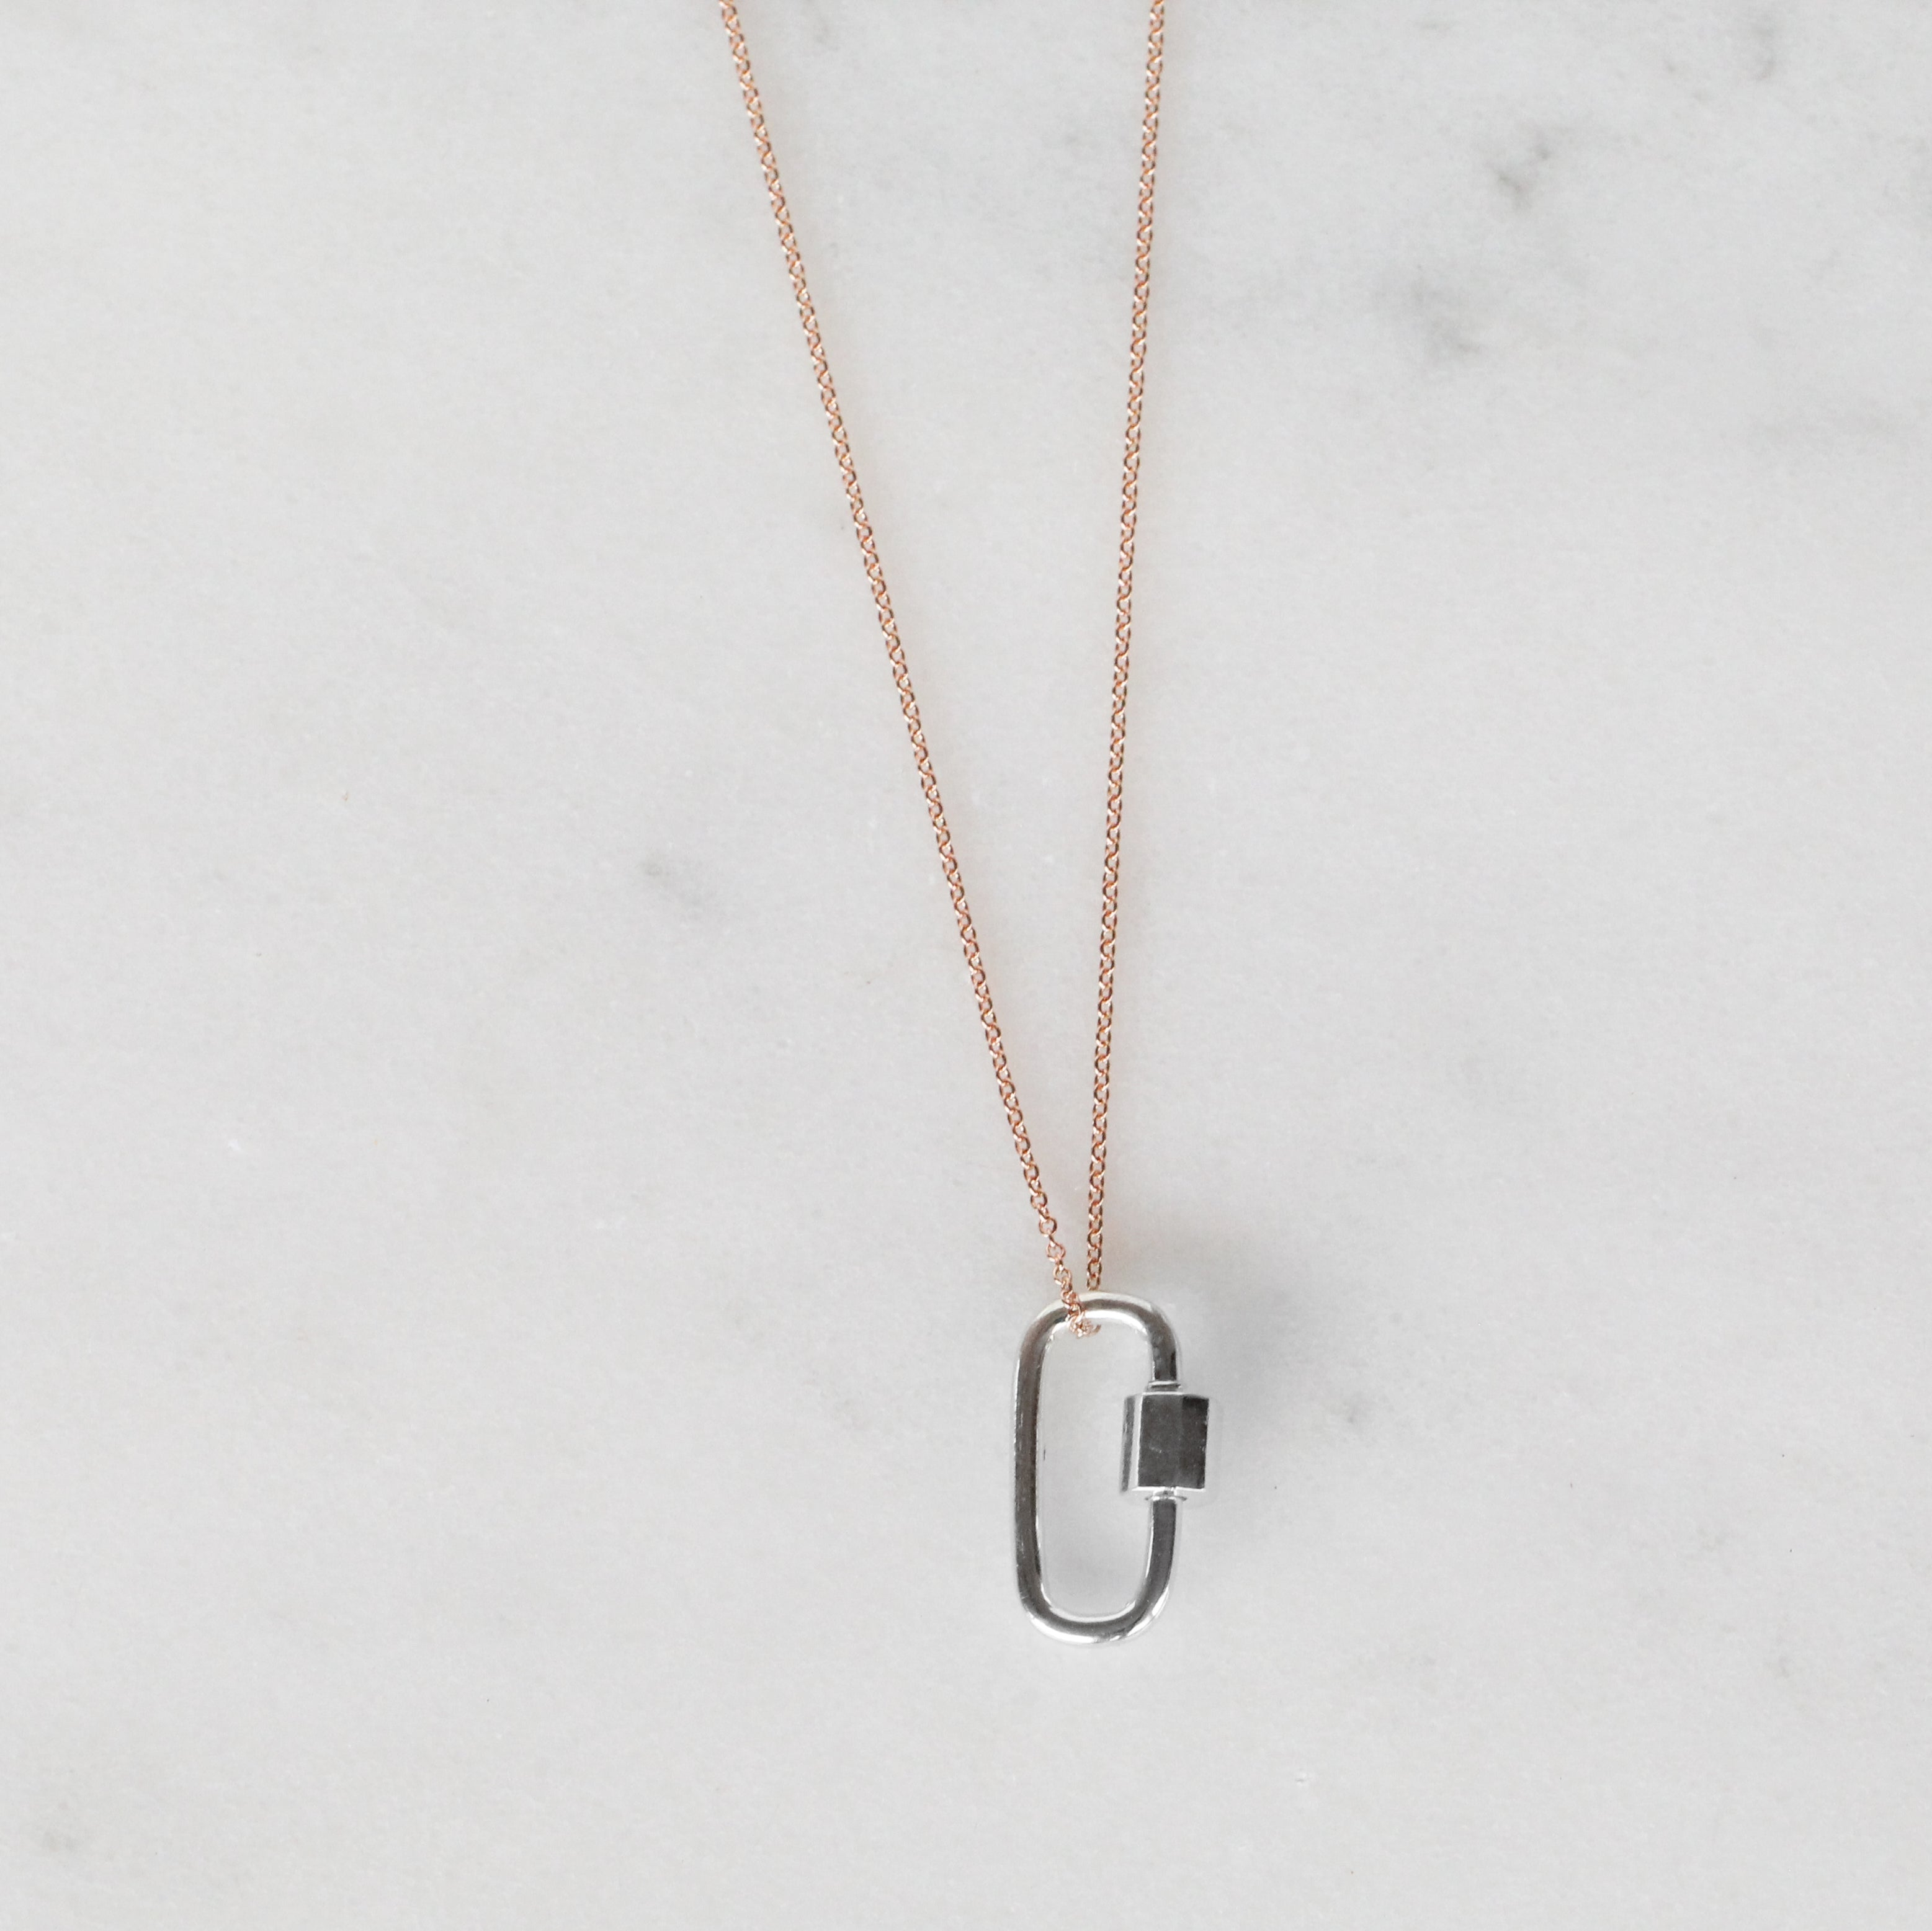 Minimal Cabrera Lock in Sterling Silver - Necklace with 14k Rose Gold Fill Chain - Celestial Diamonds ® by Midwinter Co.